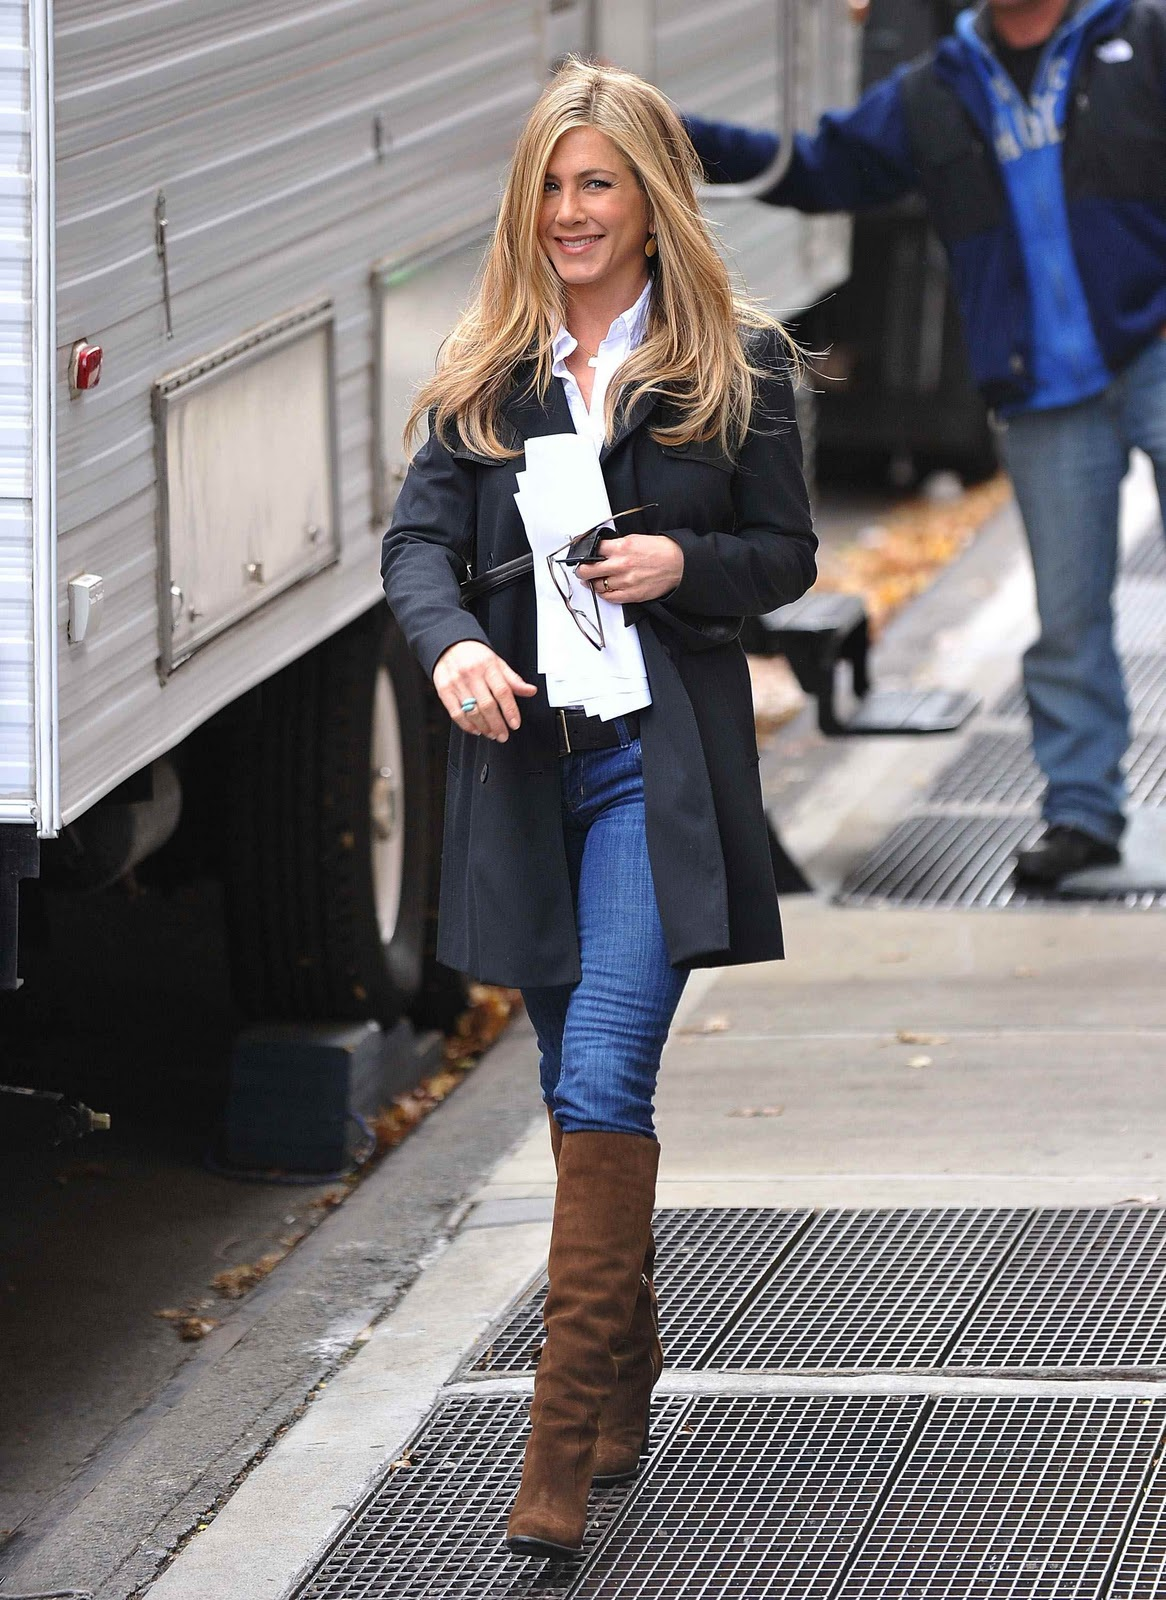 http://4.bp.blogspot.com/_LRzFEyAOGAA/TShjRnXQsNI/AAAAAAAAEUI/yGInK6Tmi1Q/s1600/73815_by_mah0ne_Jennifer_Aniston_On_The_Set_Of_Wanderlust_In_New_York_18.12.10_021_122_354lo.jpg